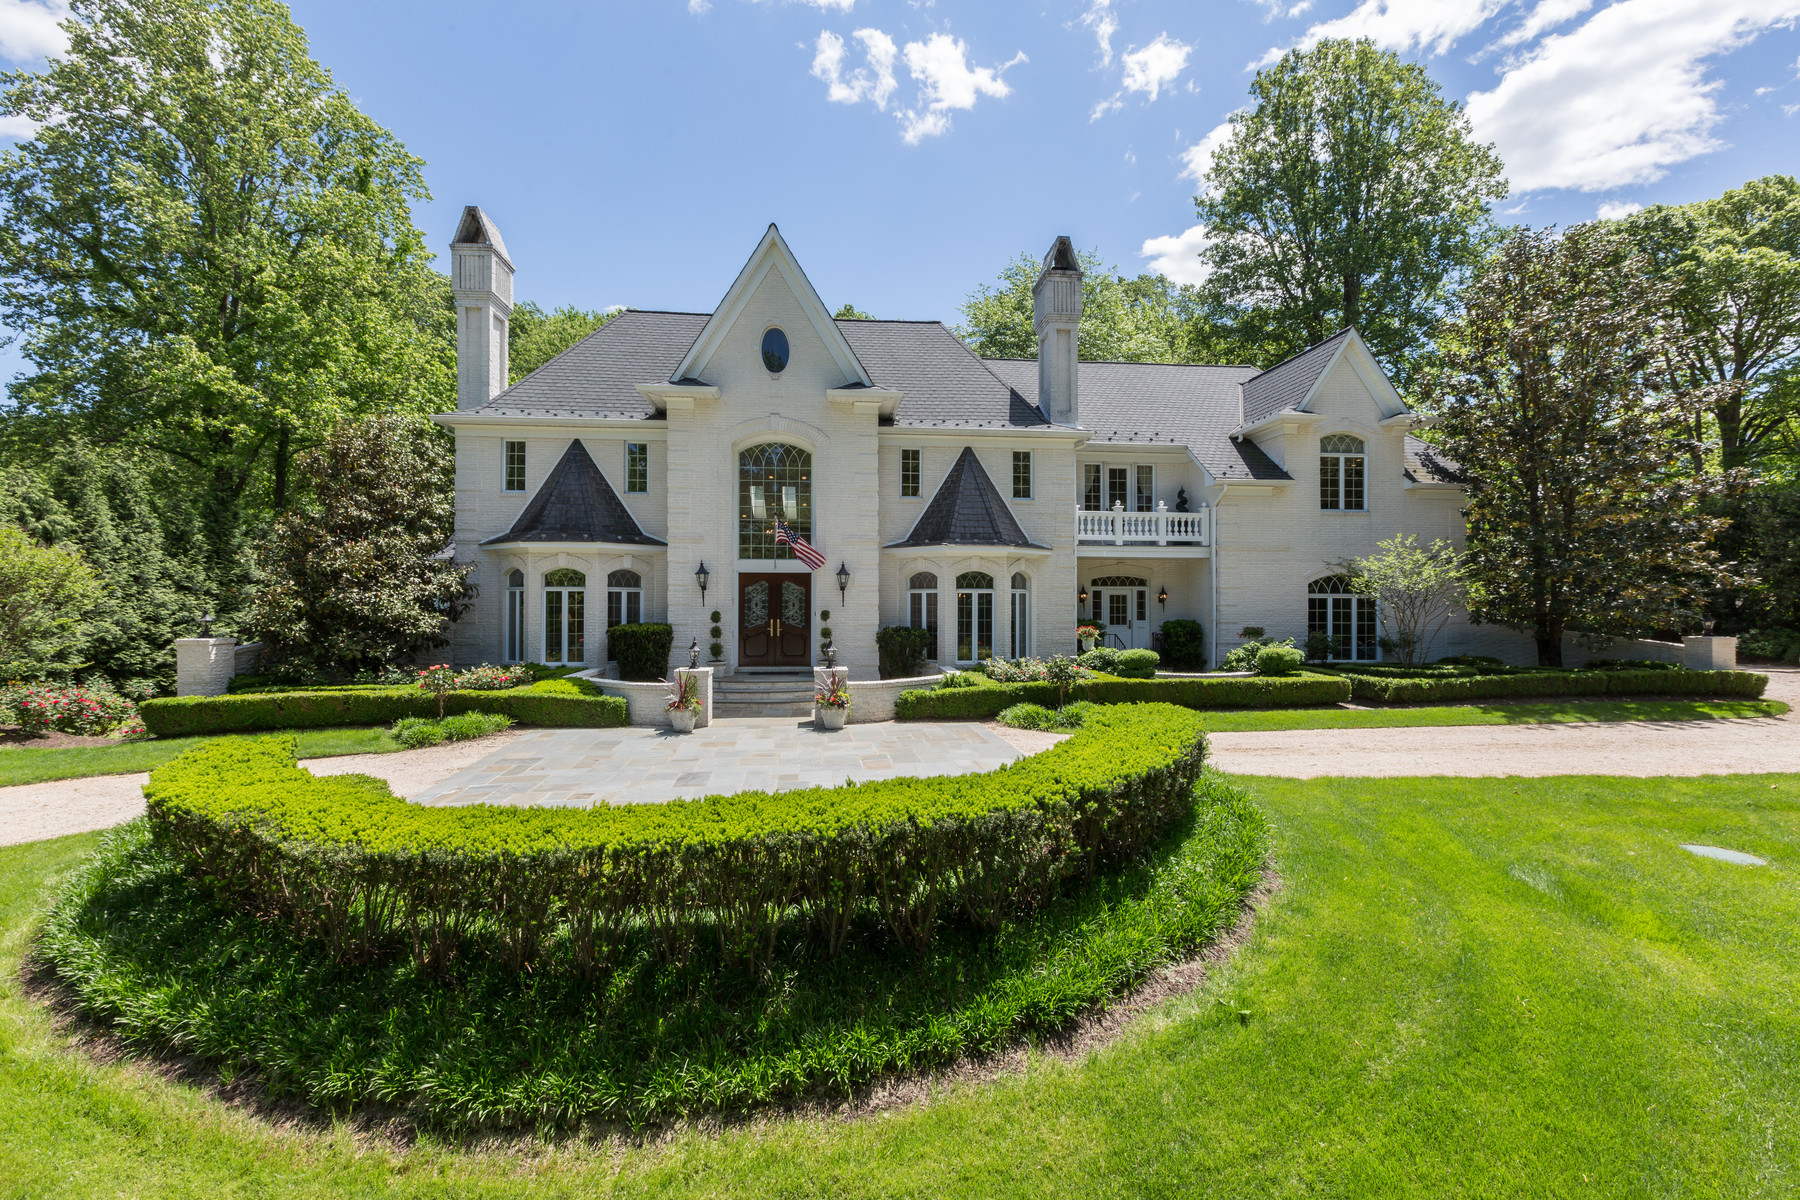 Maison unifamiliale pour l Vente à 1031 Towlston Road, Mclean 1031 Towlston Rd McLean, Virginia, 22102 États-Unis